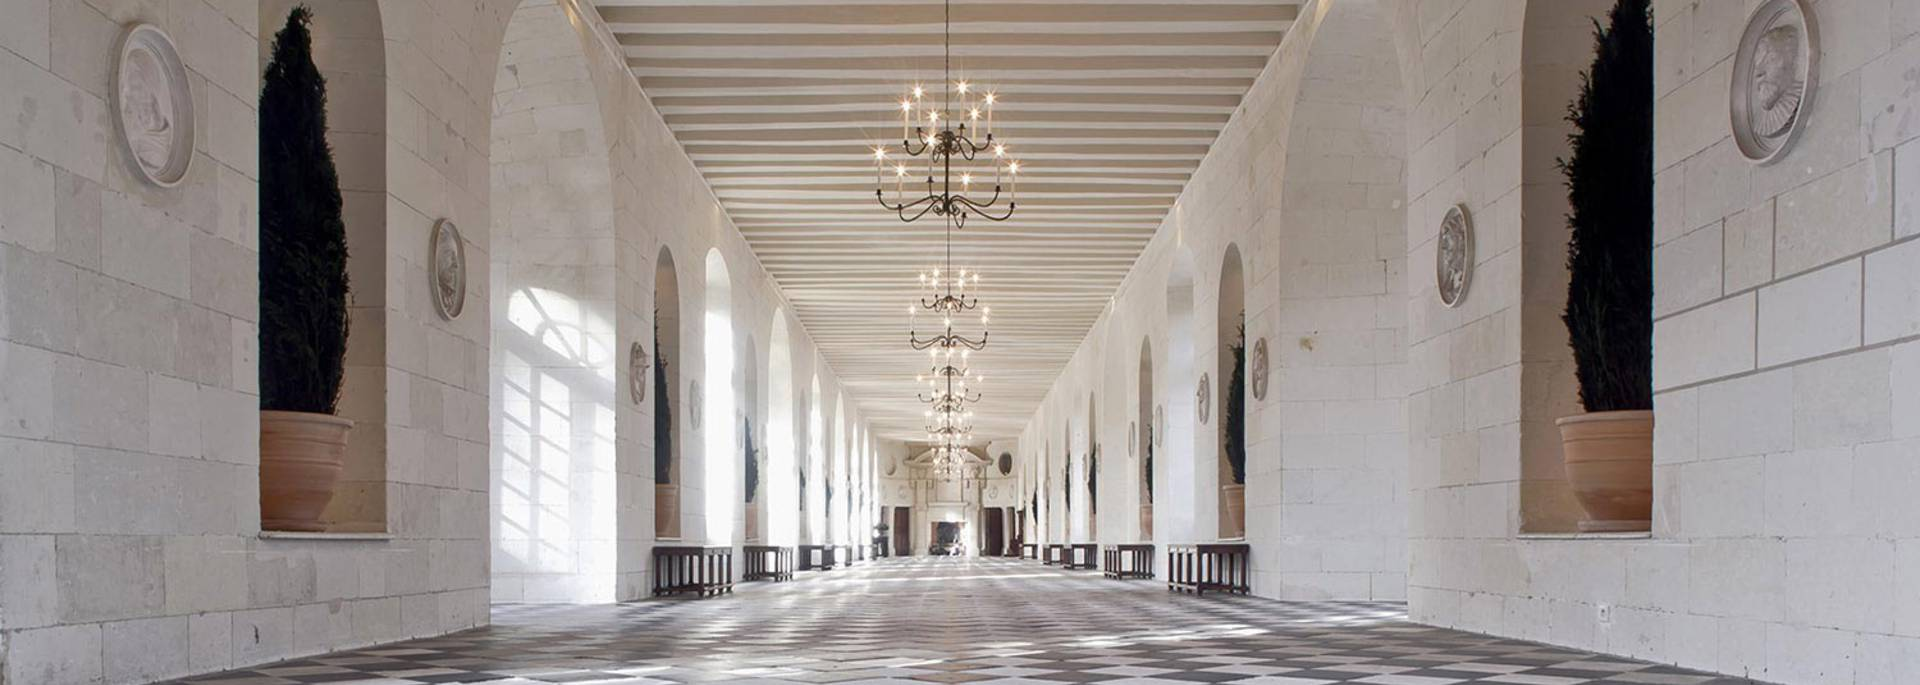 The interior of the Château de Chenonceau